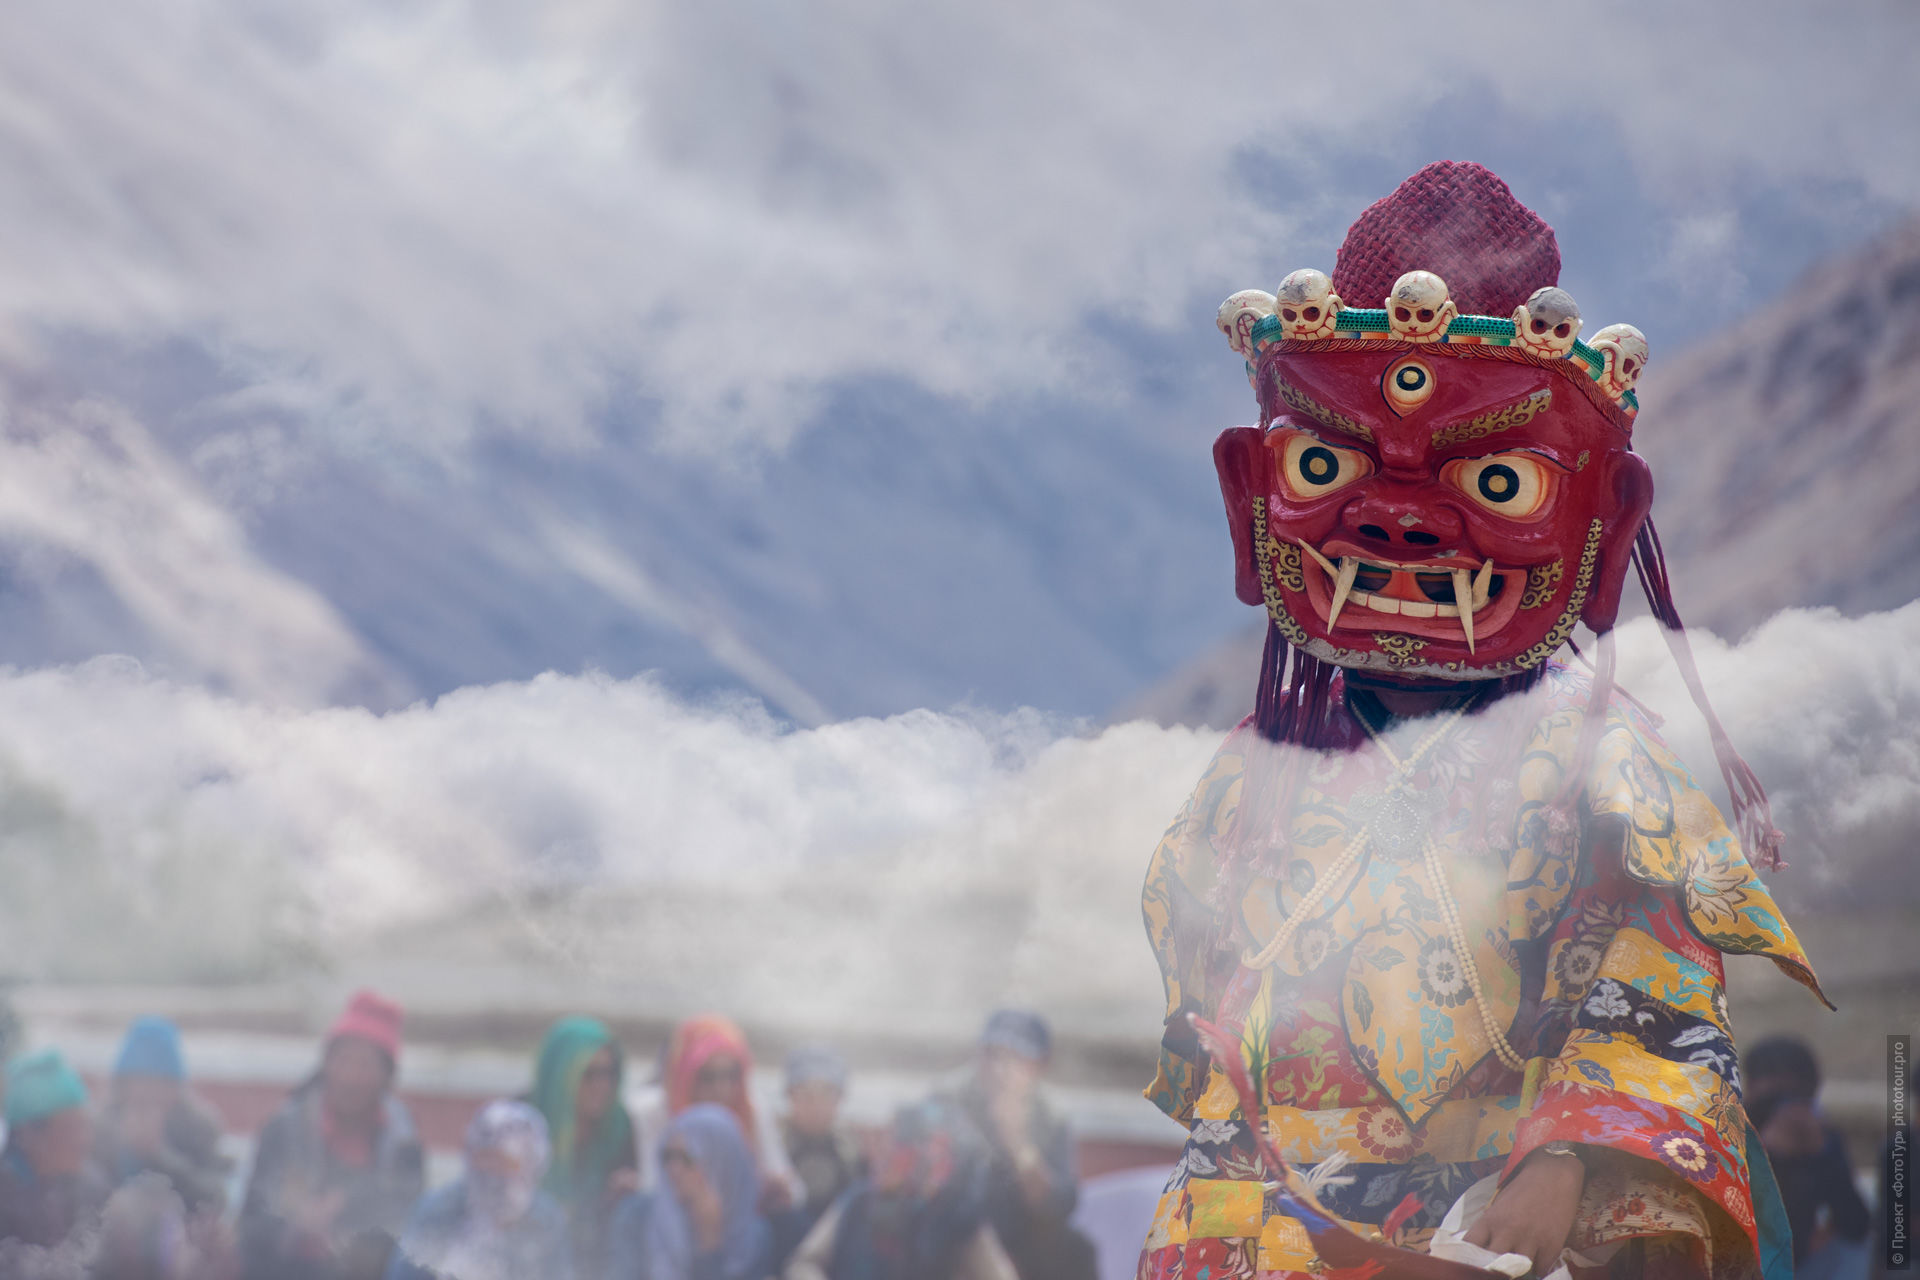 Buddhist Mystery with cham dance performance. Phototour Incredible Himalayas-2: Tsam dance at Tiksei monastery + Tso Moriri lake, Ladakh, Tibet, 11.11.-20.11.2020.